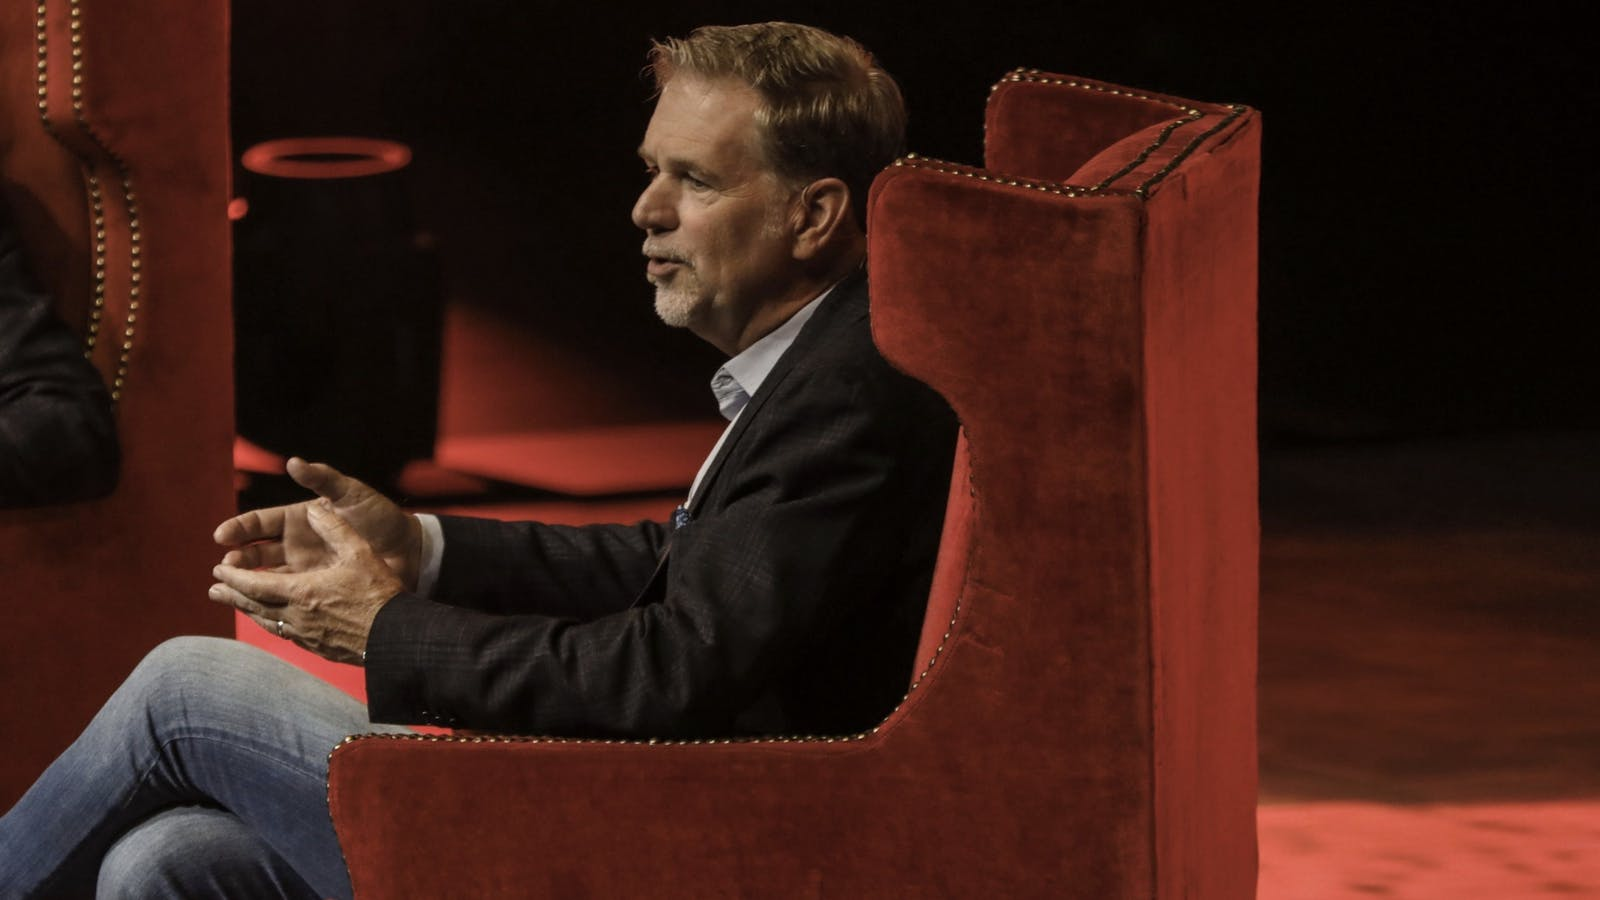 Netflix Co-CEO Reed Hastings. Photo by Bloomberg.